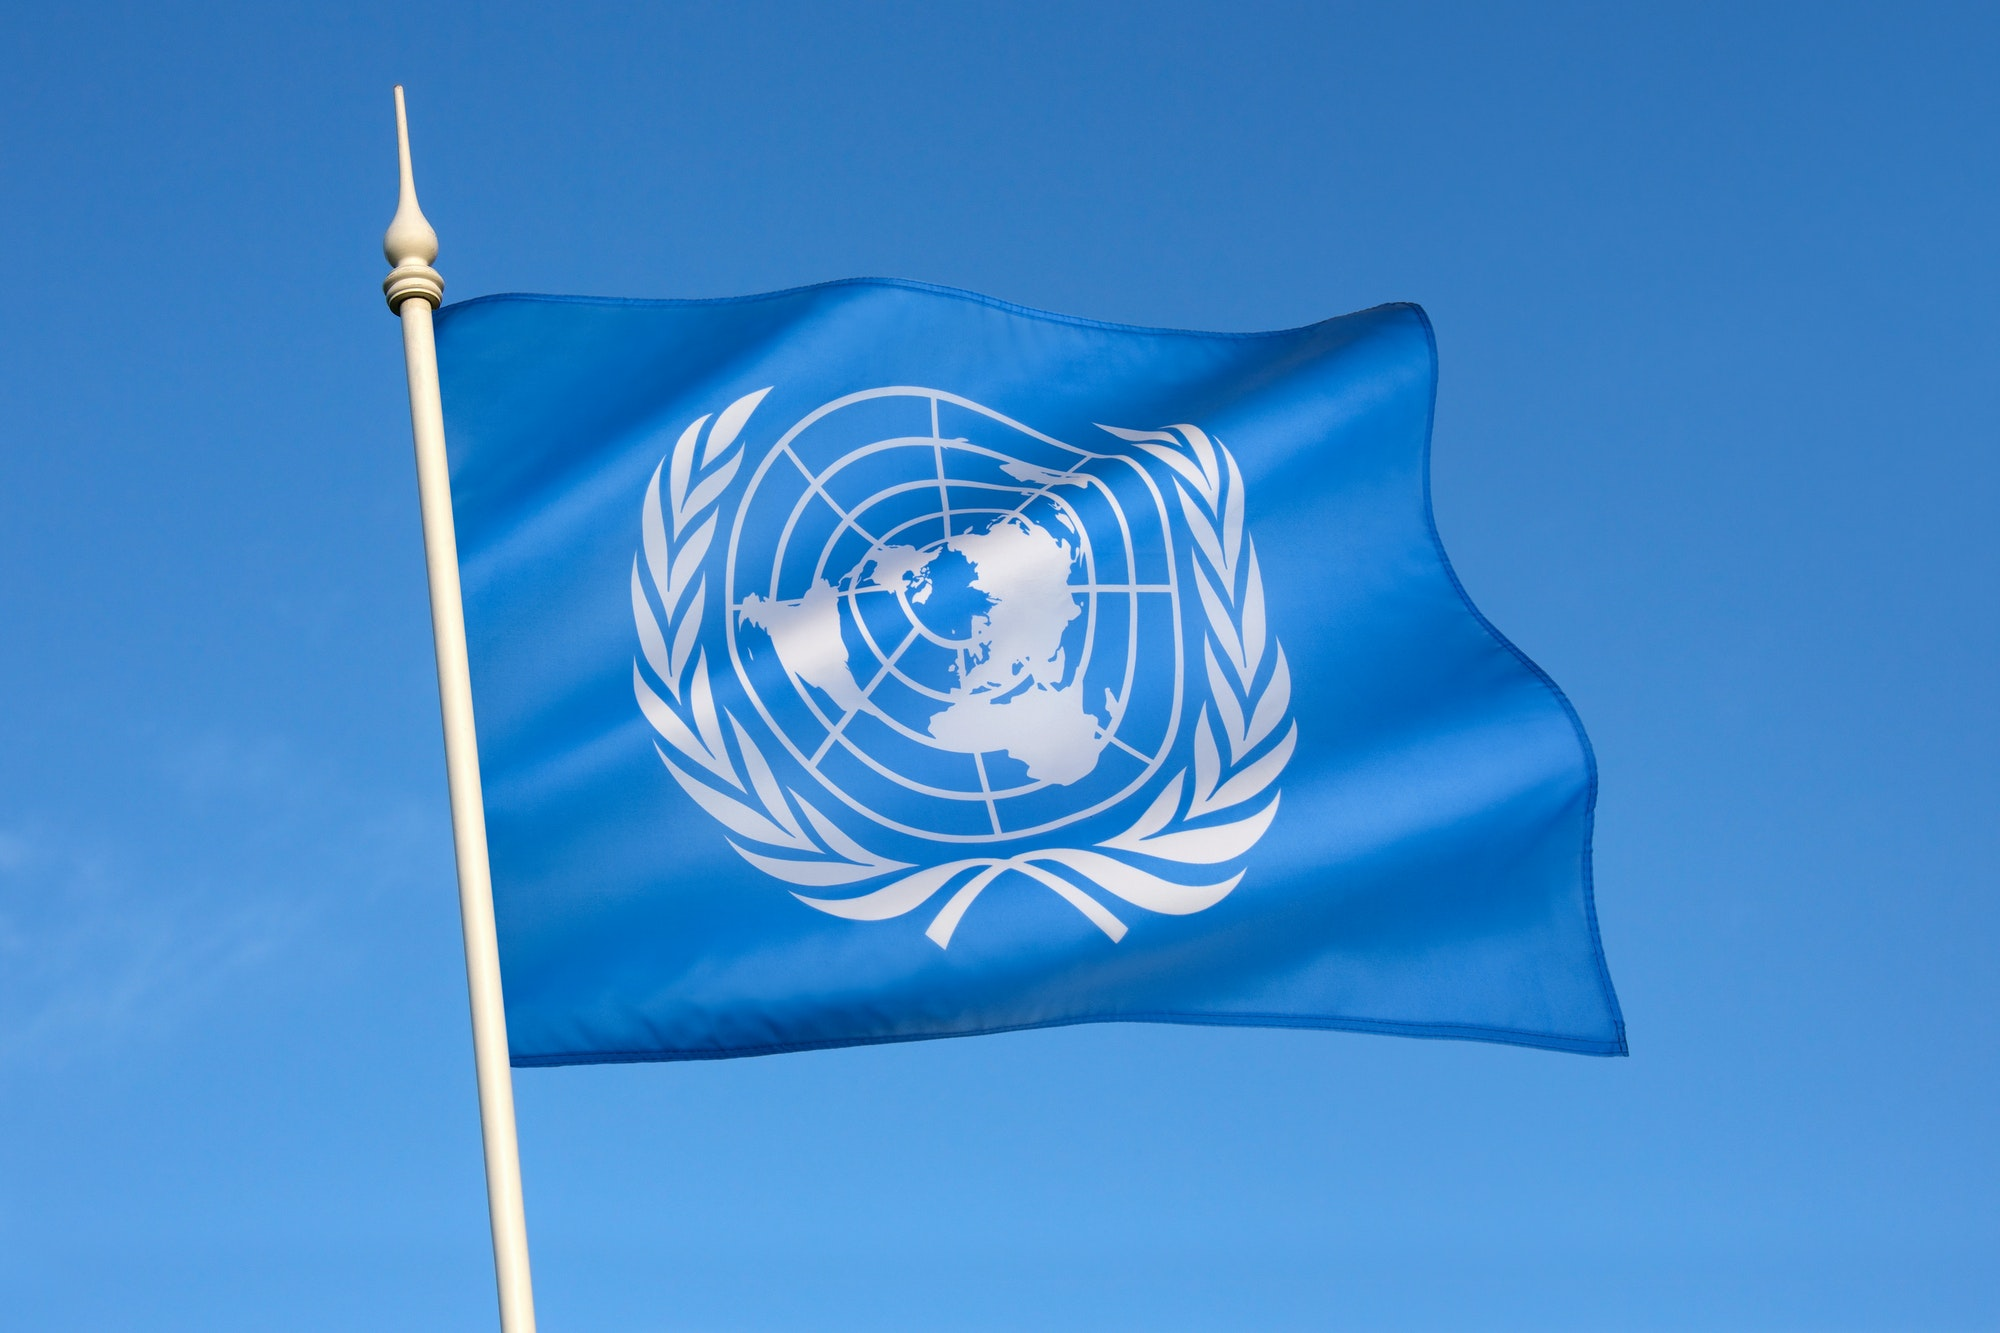 The flag of the United Nations was adopted on December 7